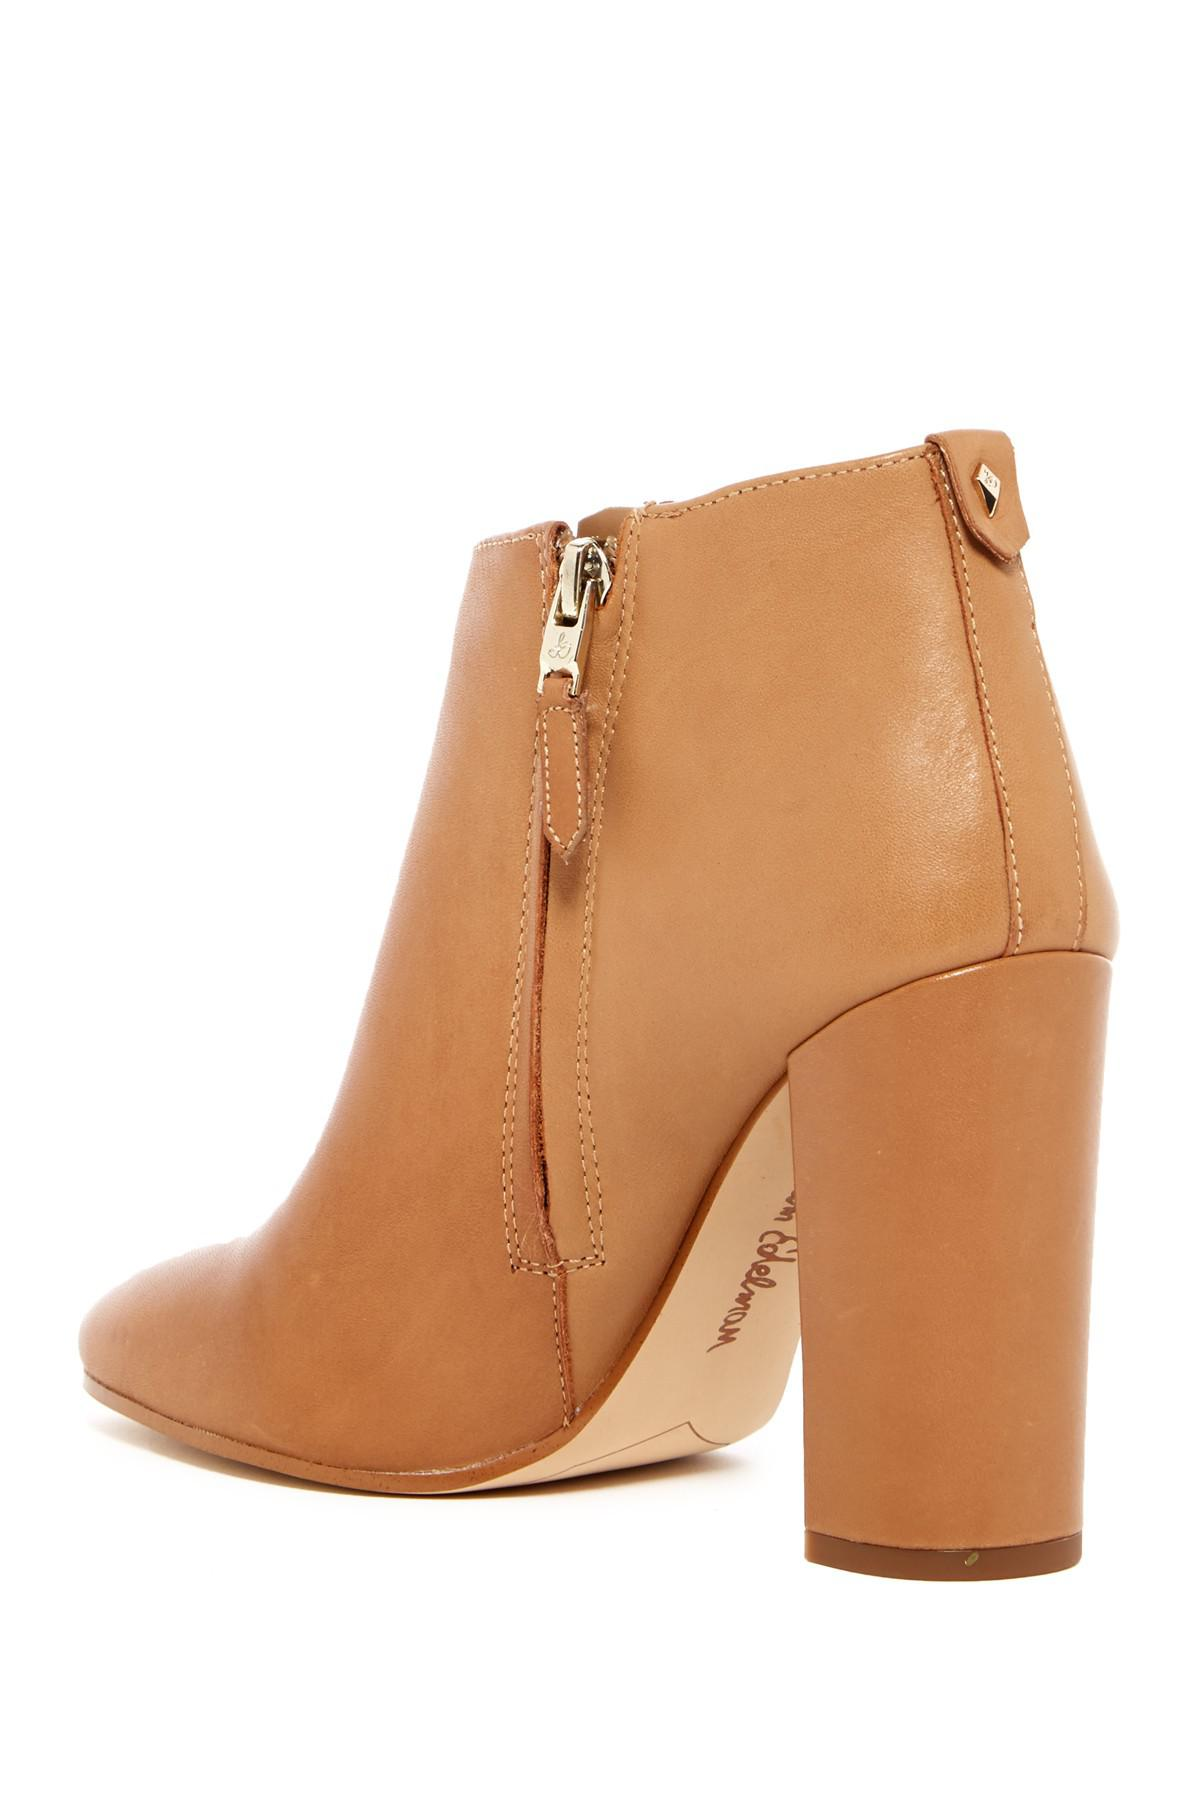 09eaf2e34 Lyst - Sam Edelman Cambell Heeled Bootie in Brown